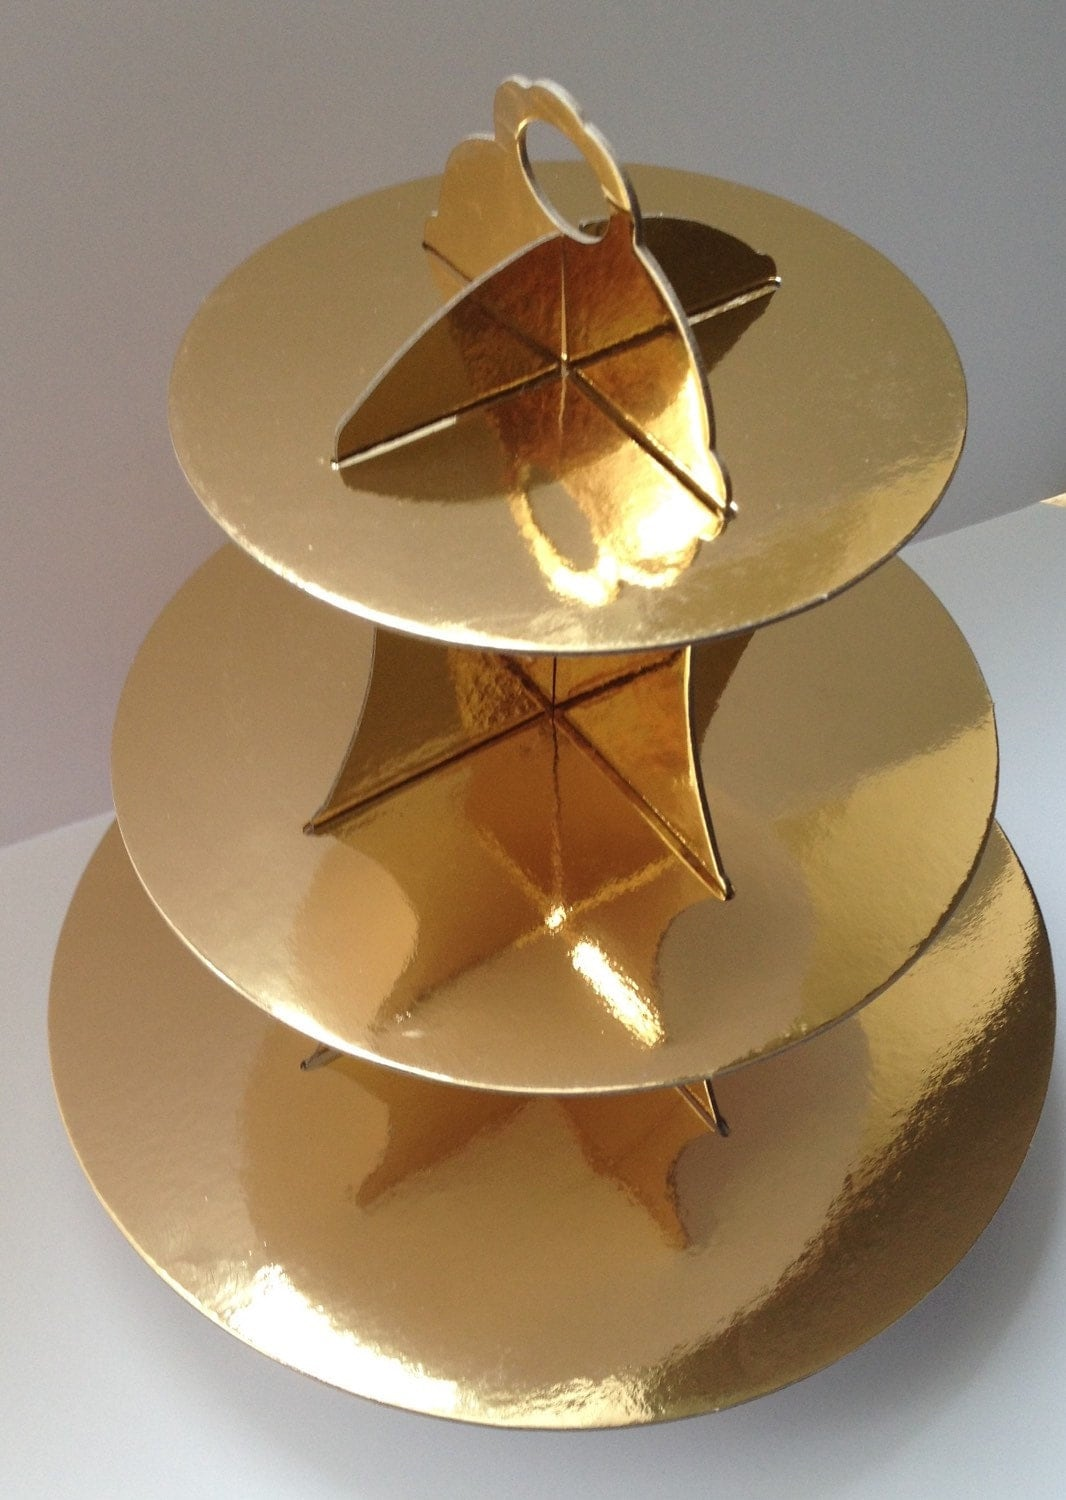 new 3 tier cupcake stand cardboard gold wedding party cake. Black Bedroom Furniture Sets. Home Design Ideas